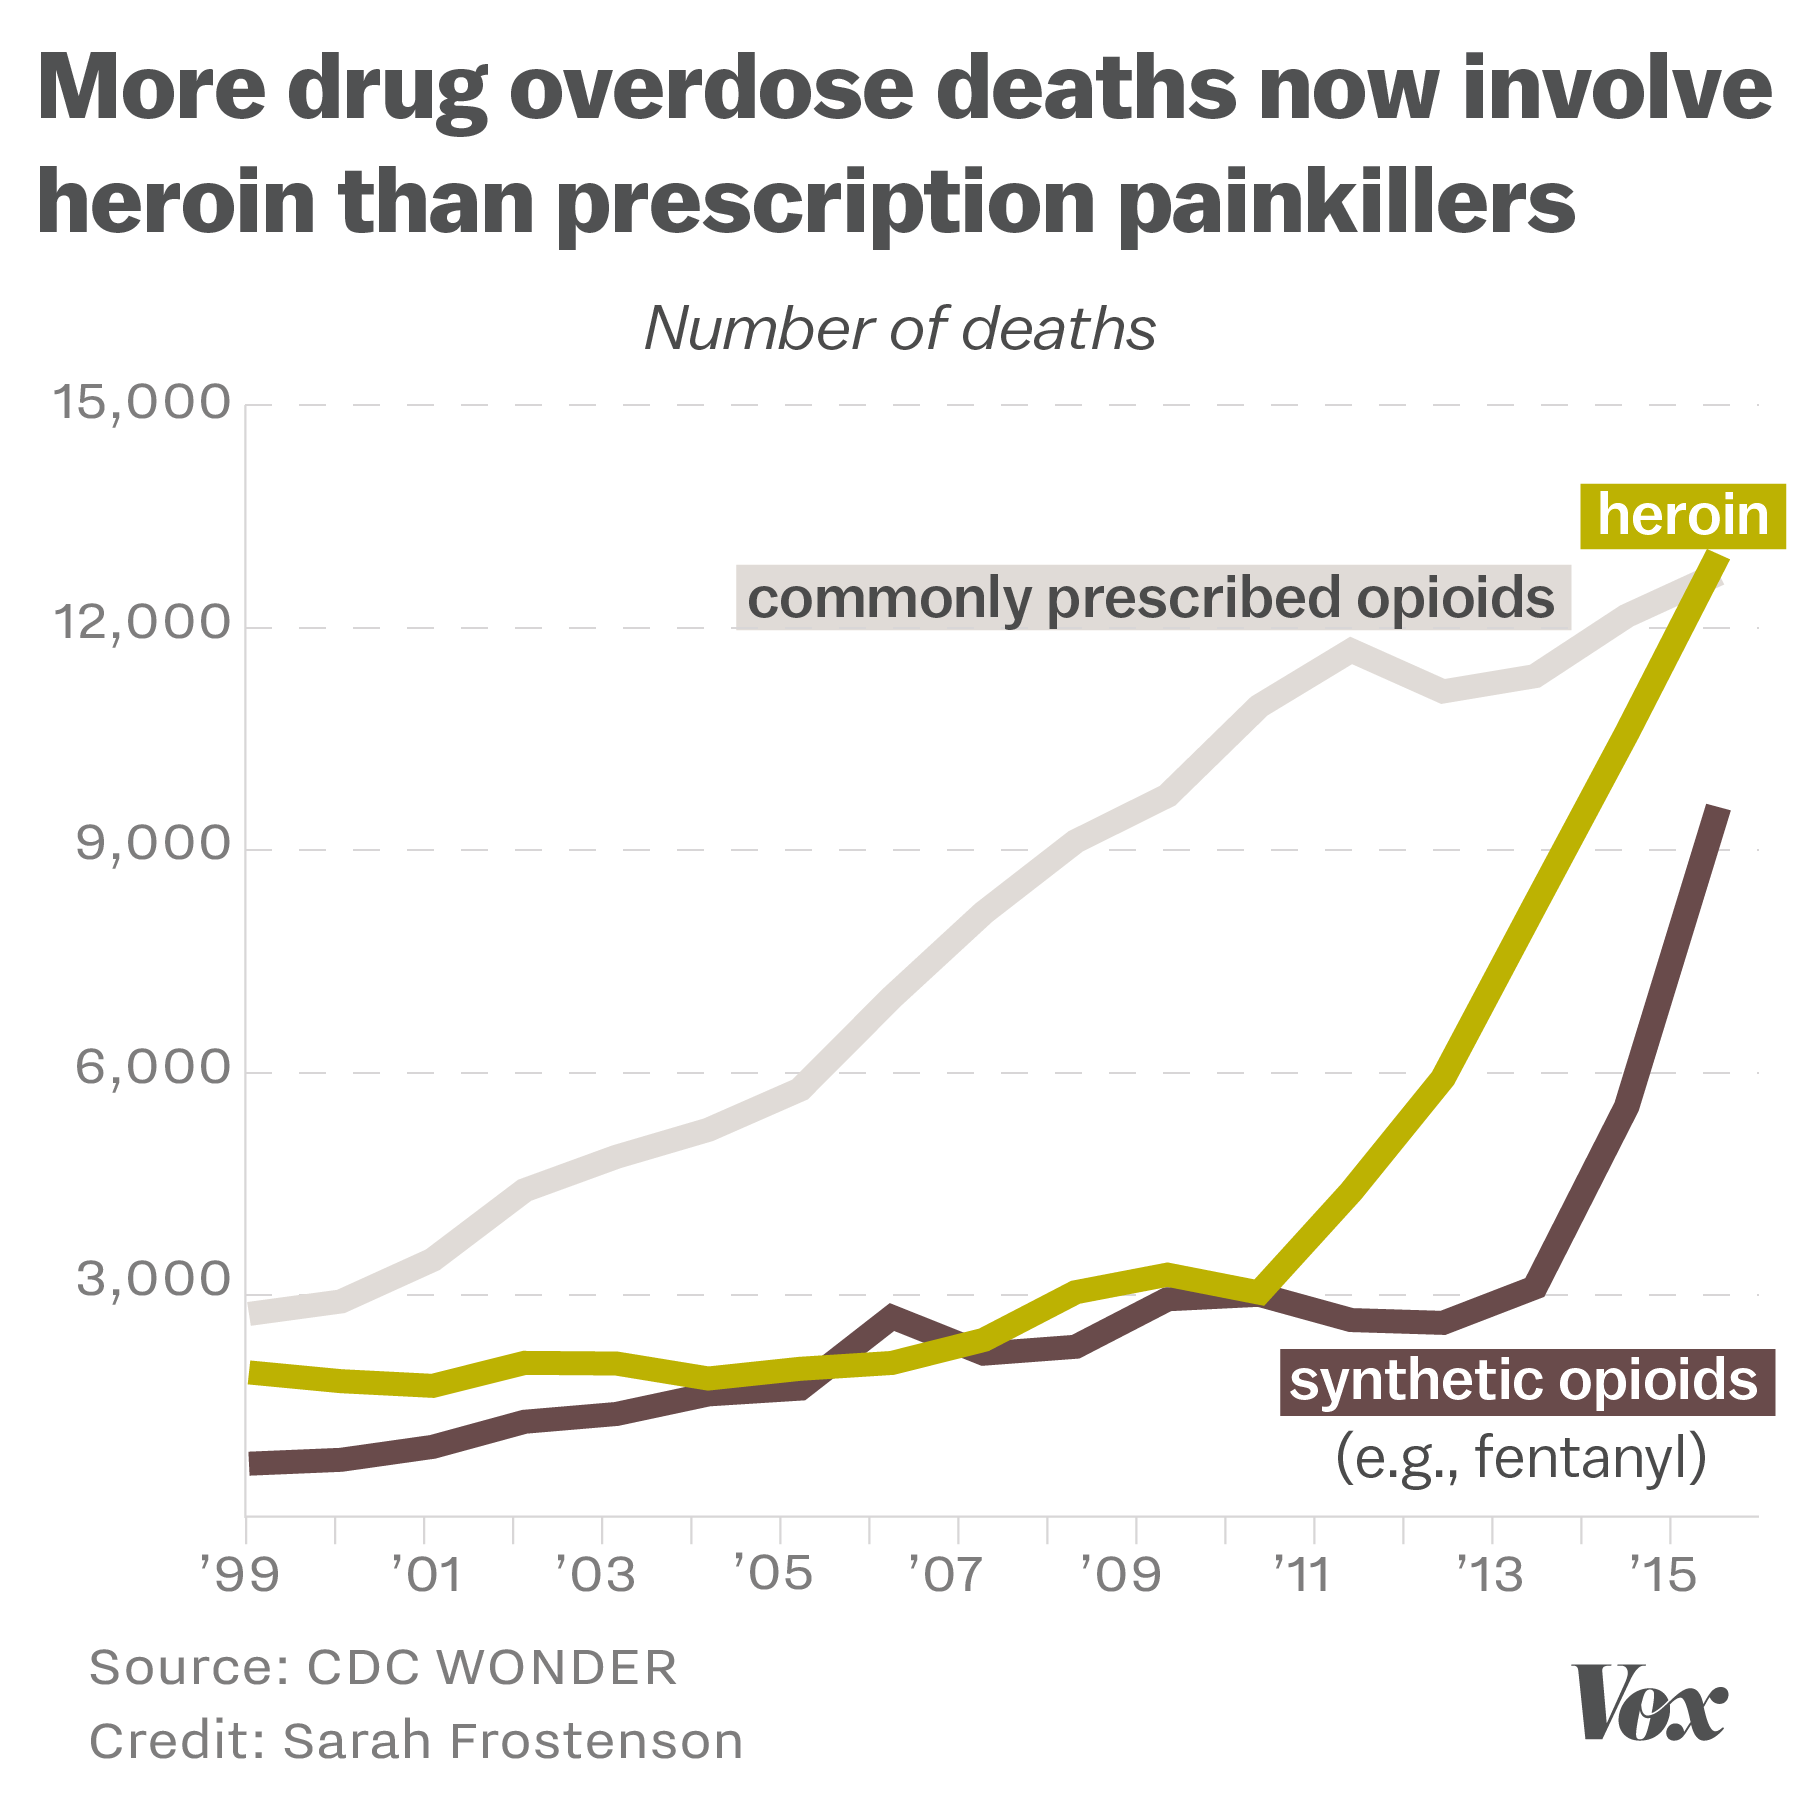 americas prescription drug crisis essay In america, it's estimated that one hundred people die daily from prescription drug overdose alarmingly, the number of these fatalities has increased over 300% since.